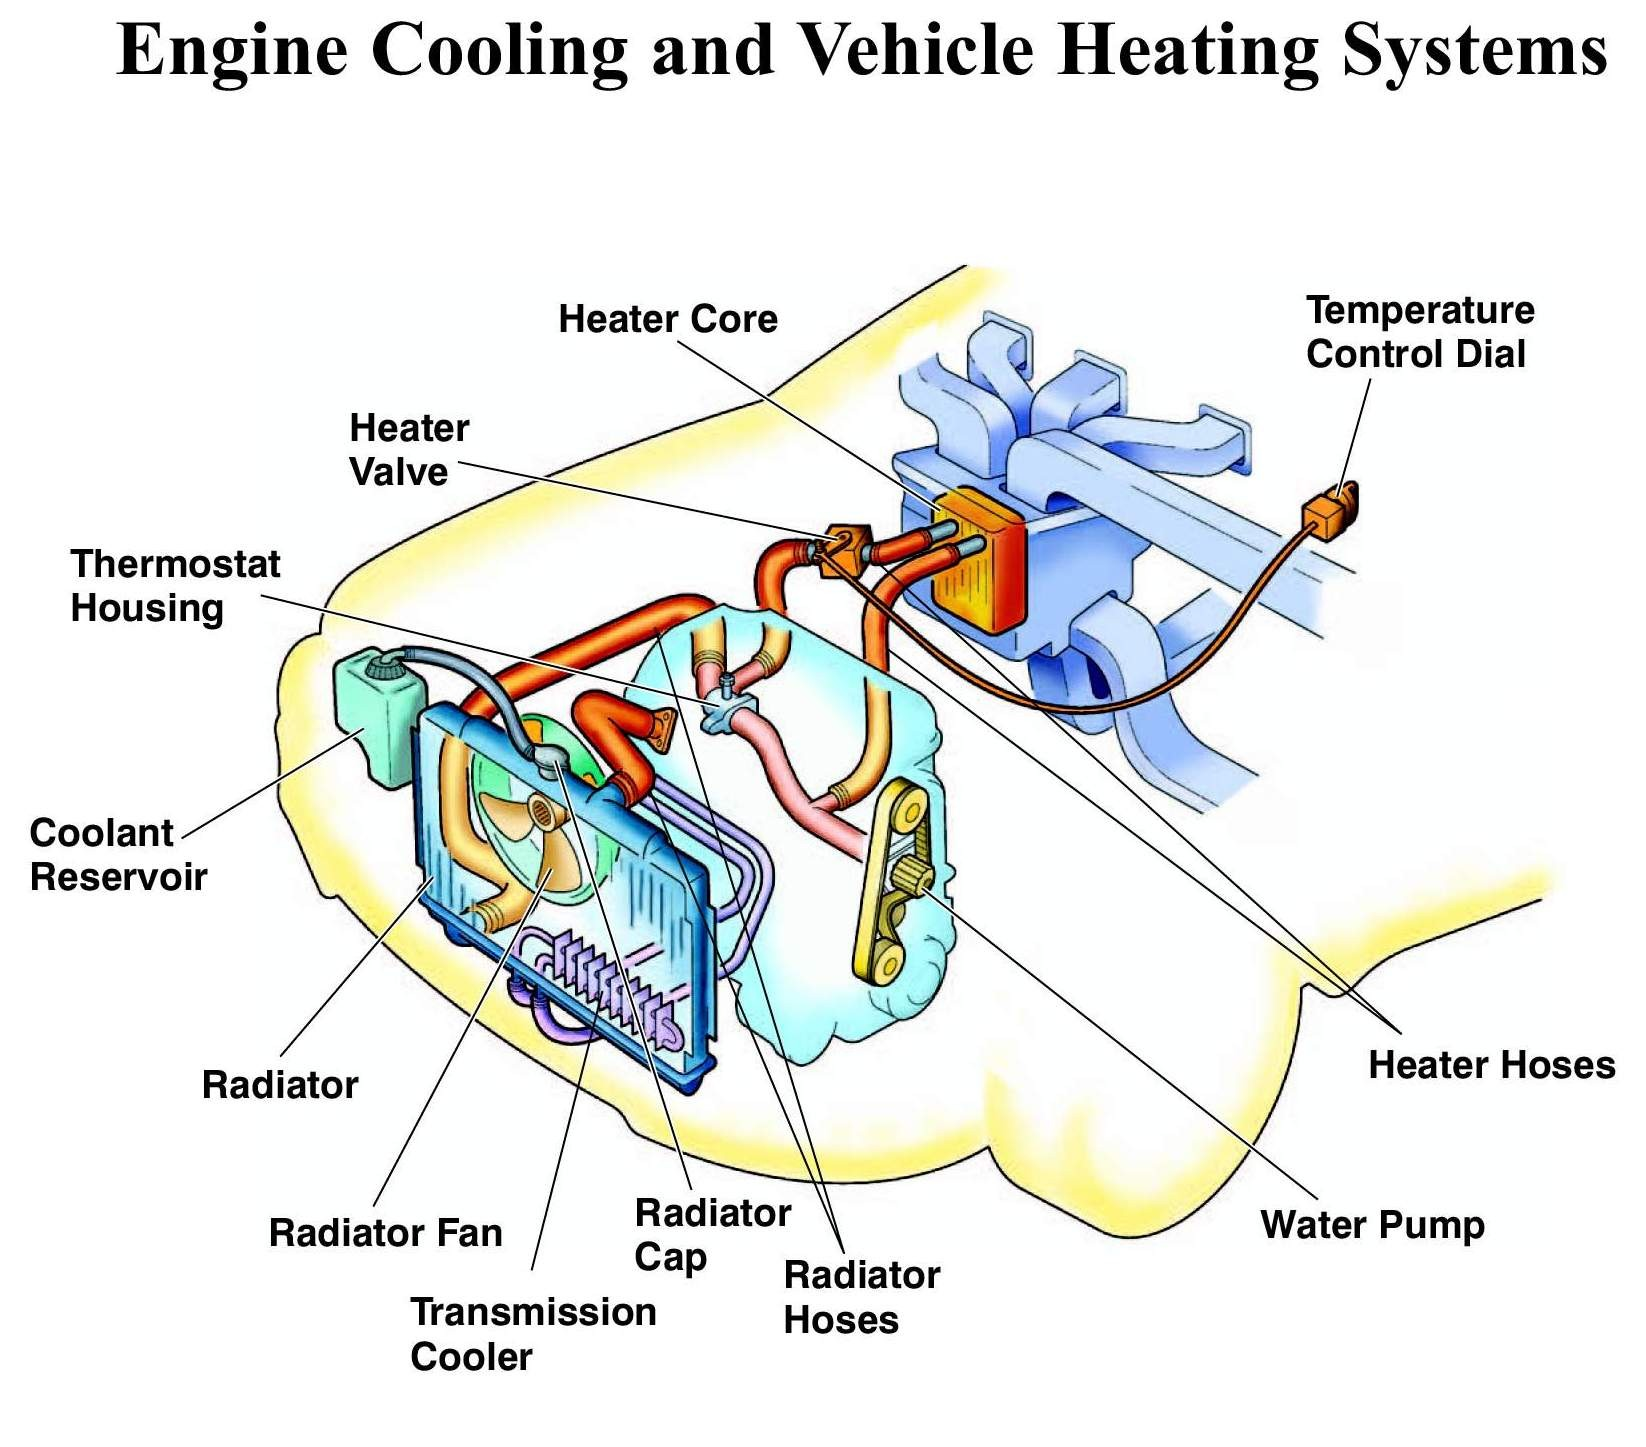 Wiring Diagram Dodge Caravan 2006 Simple Guide About Of Car Cooling System Radiator Parts